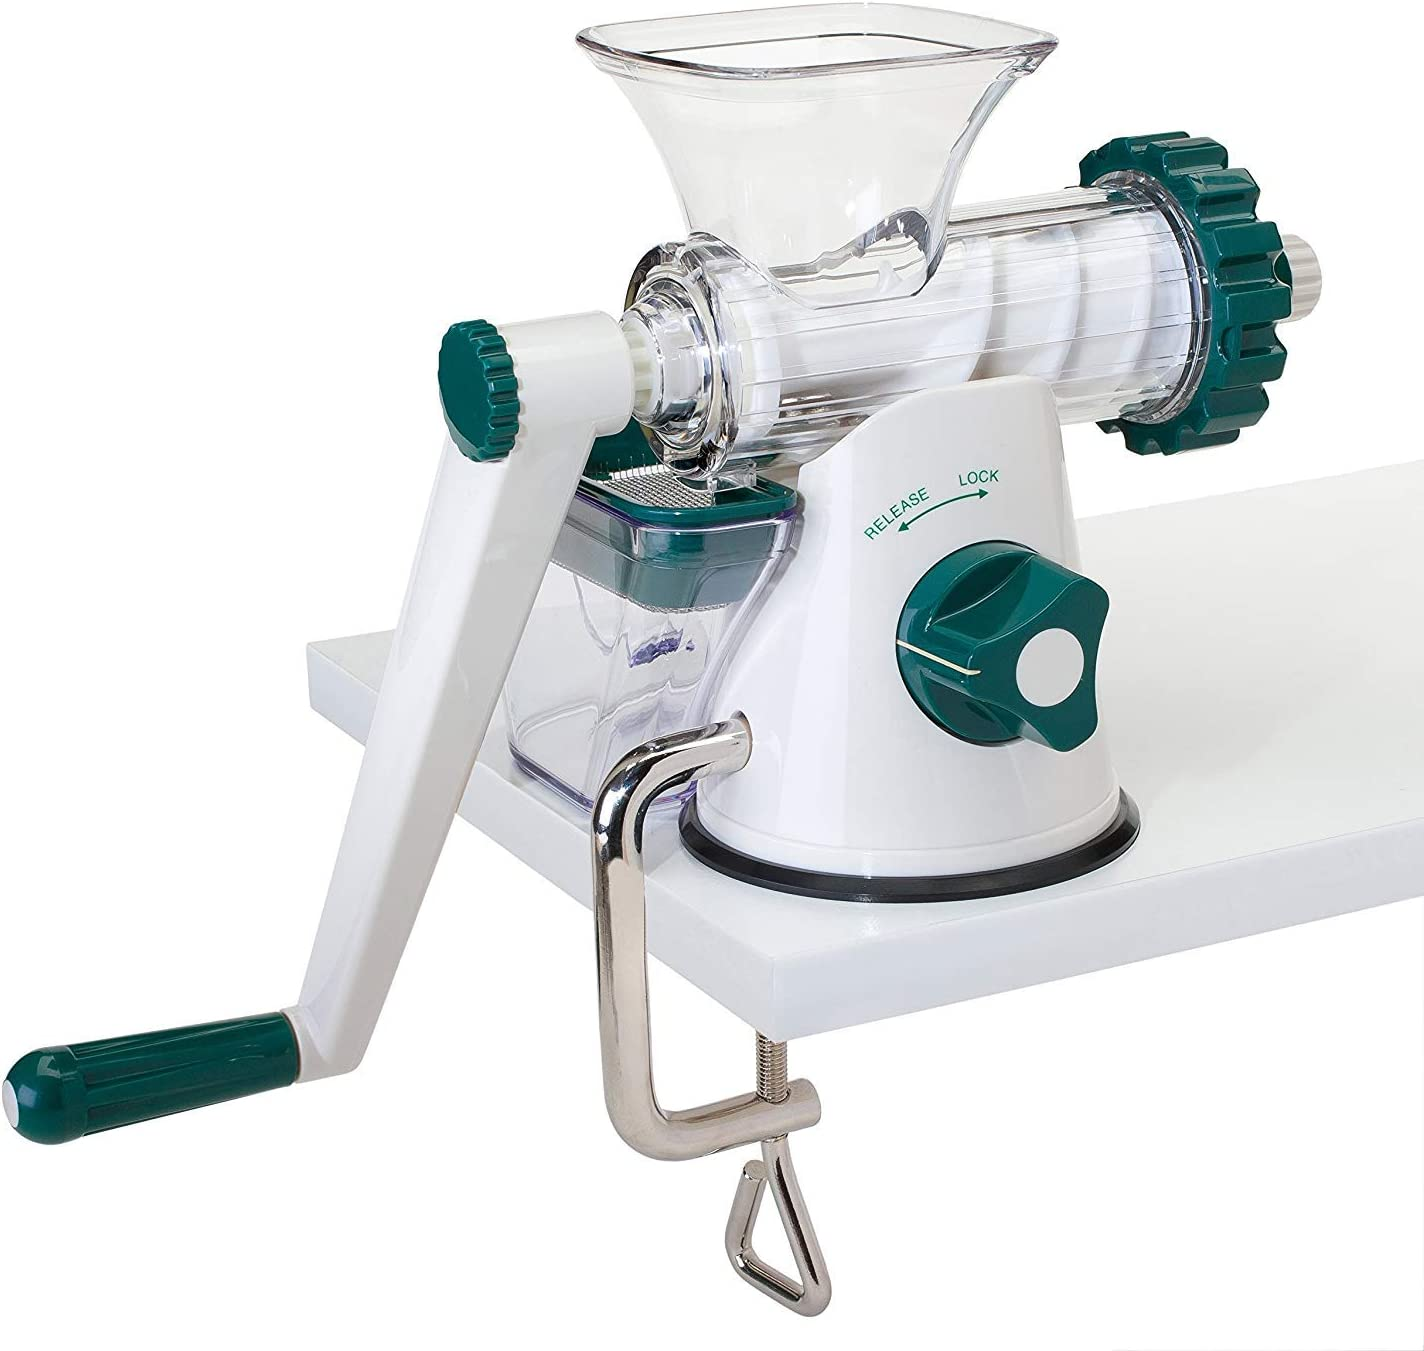 The Original Healthy Juicer (Lexen GP27) for kale